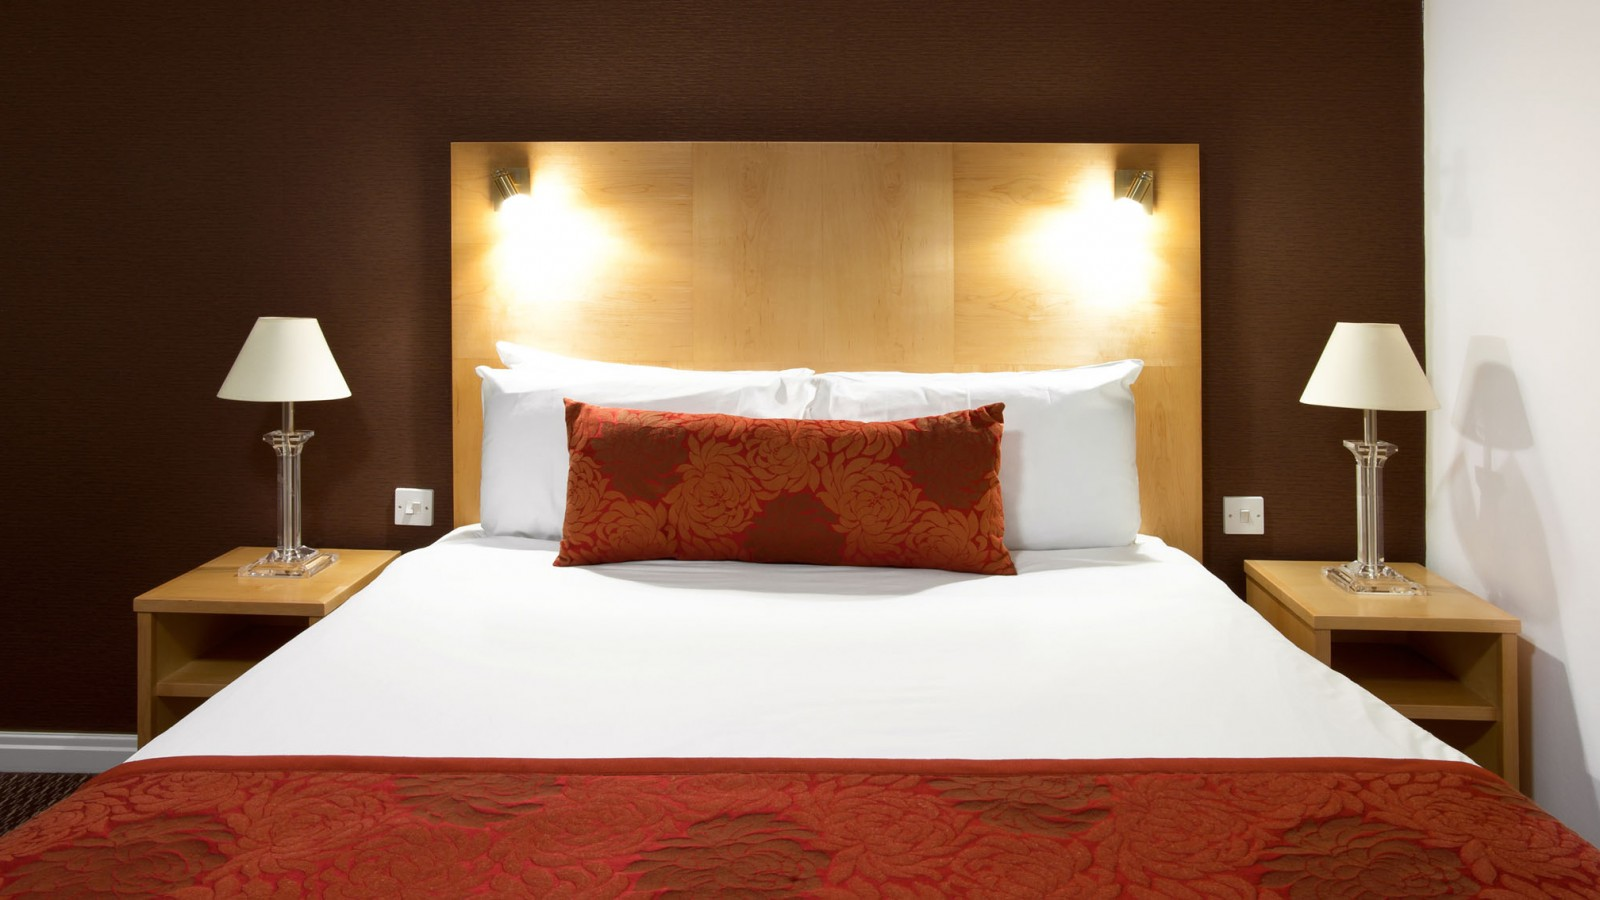 Room-Standard – Ghlisting Hotels in Ghana, Events in Ghana